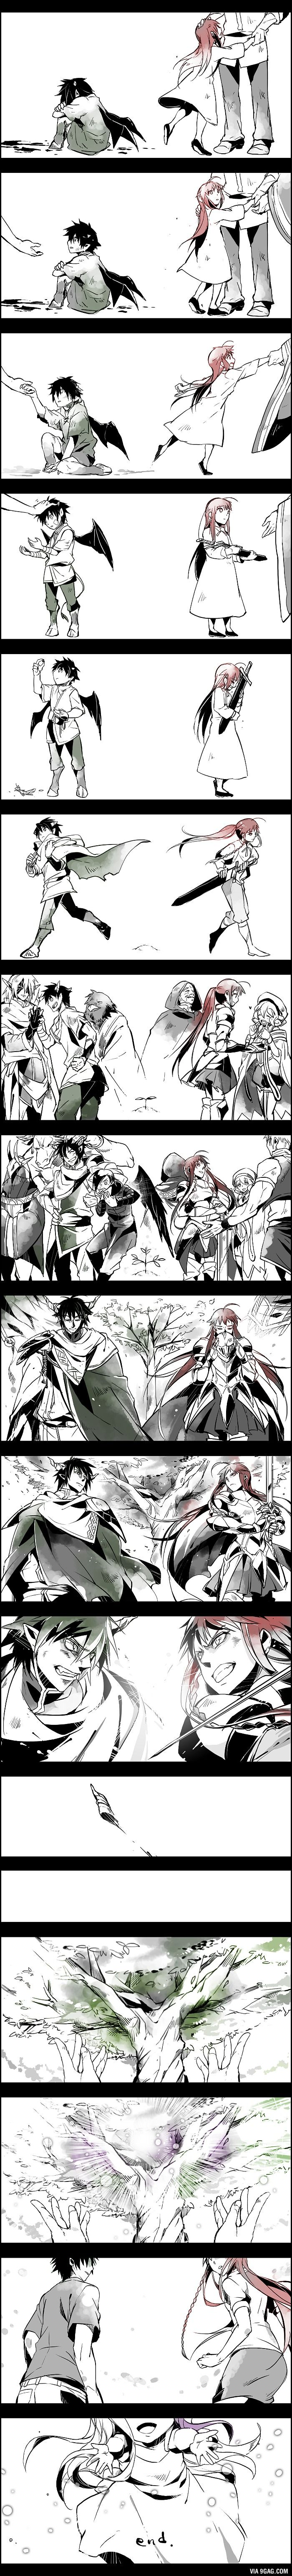 Hataraku Maou-sama / the devil is a partimer (maou & emilia ) - They both fight to protect, yet they're not so different.